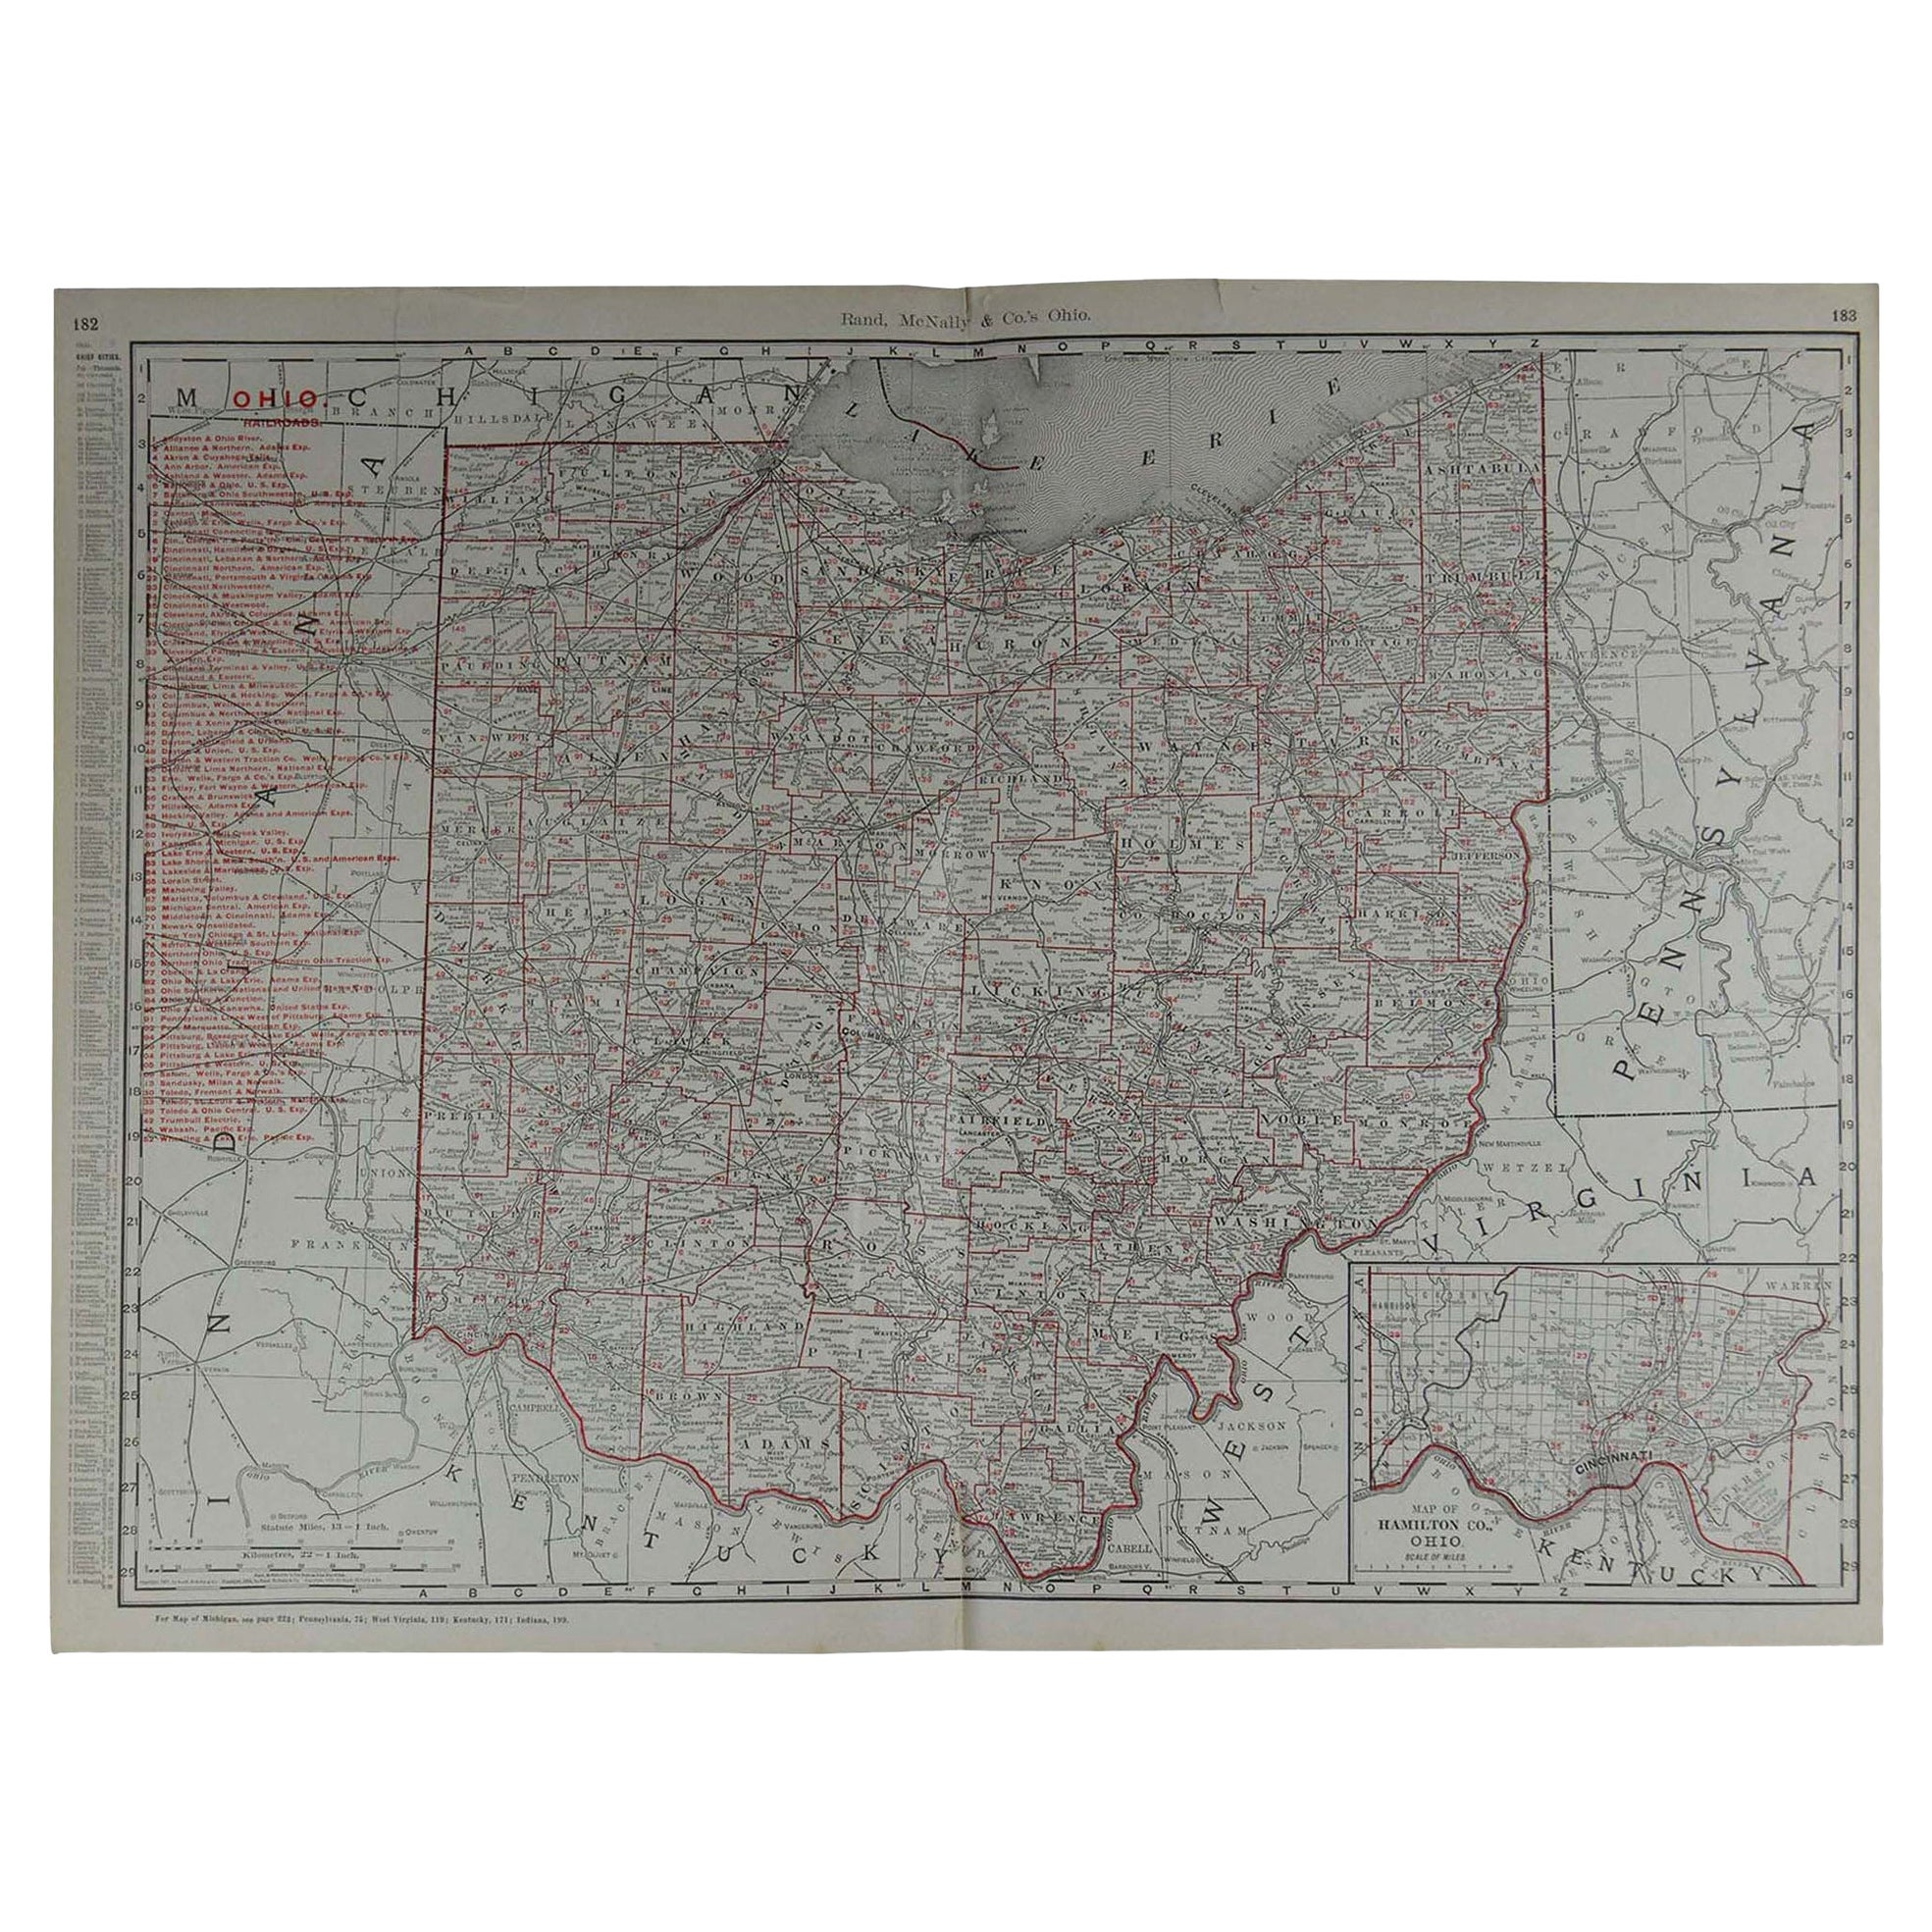 Large Original Antique Map of Ohio by Rand McNally, circa 1900